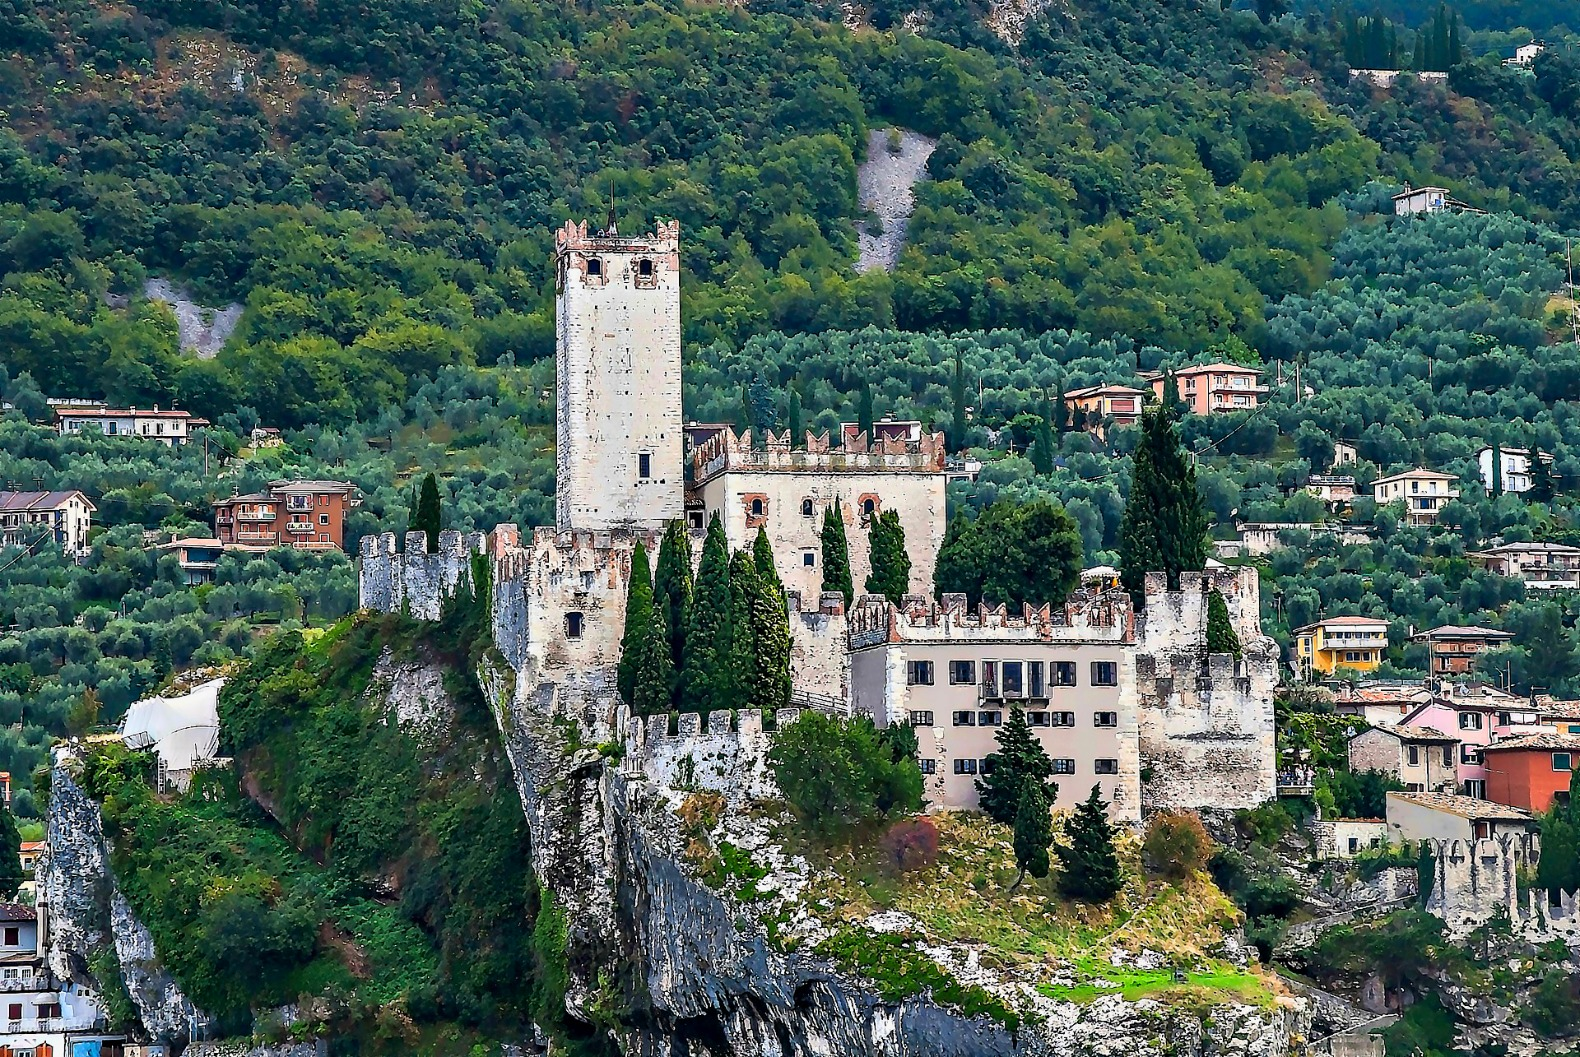 Italy is giving away hundreds of historic castles and villas for free